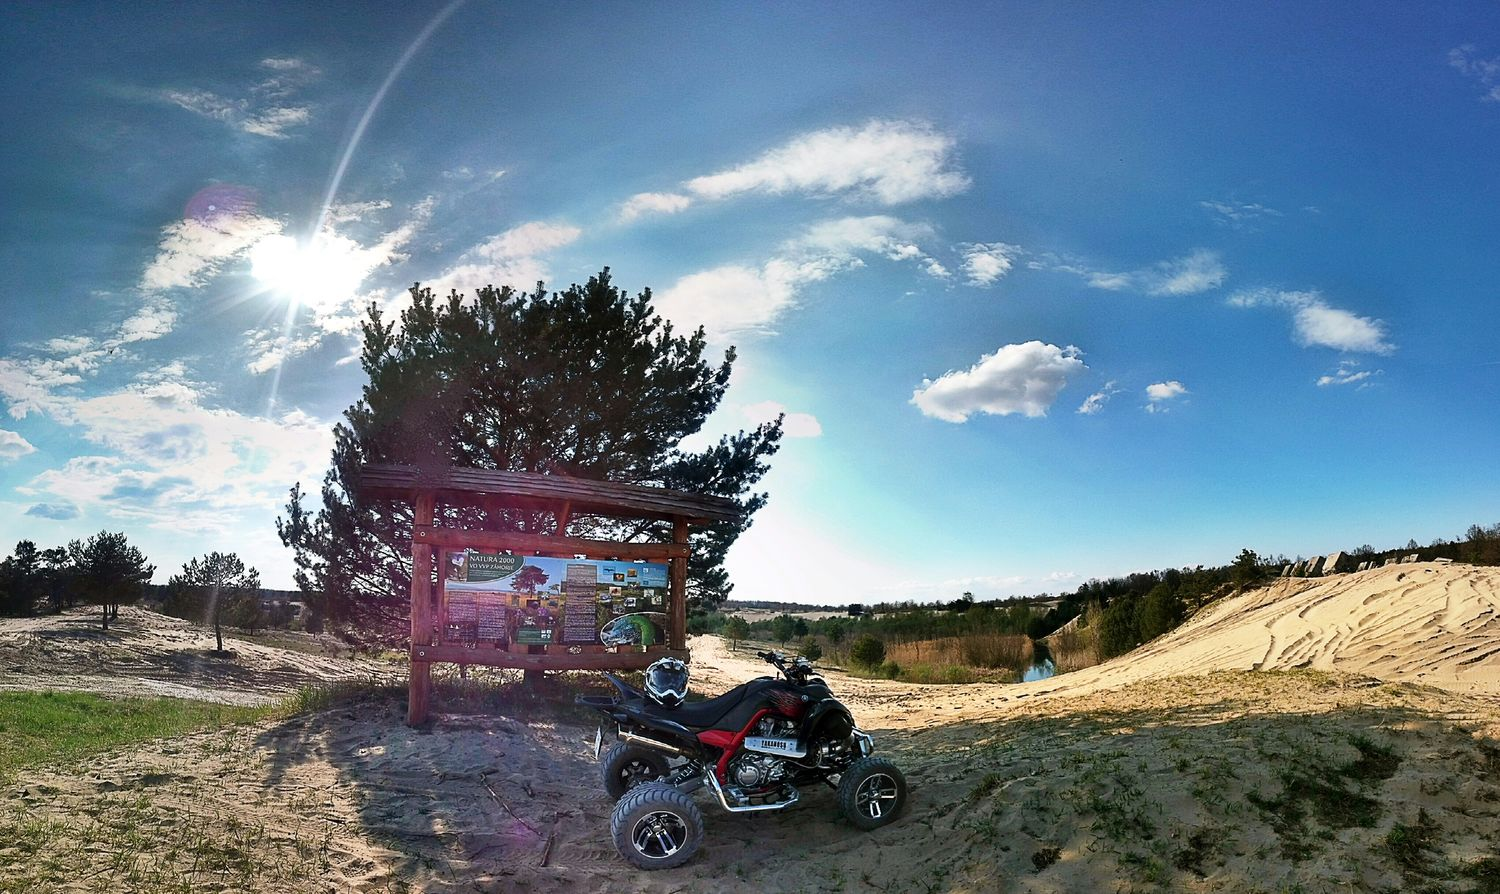 RAPTOR 700 Turbo Yakahosu Dahlback Racing Sunnyday Nature Yamaha Beautiful Day Sand